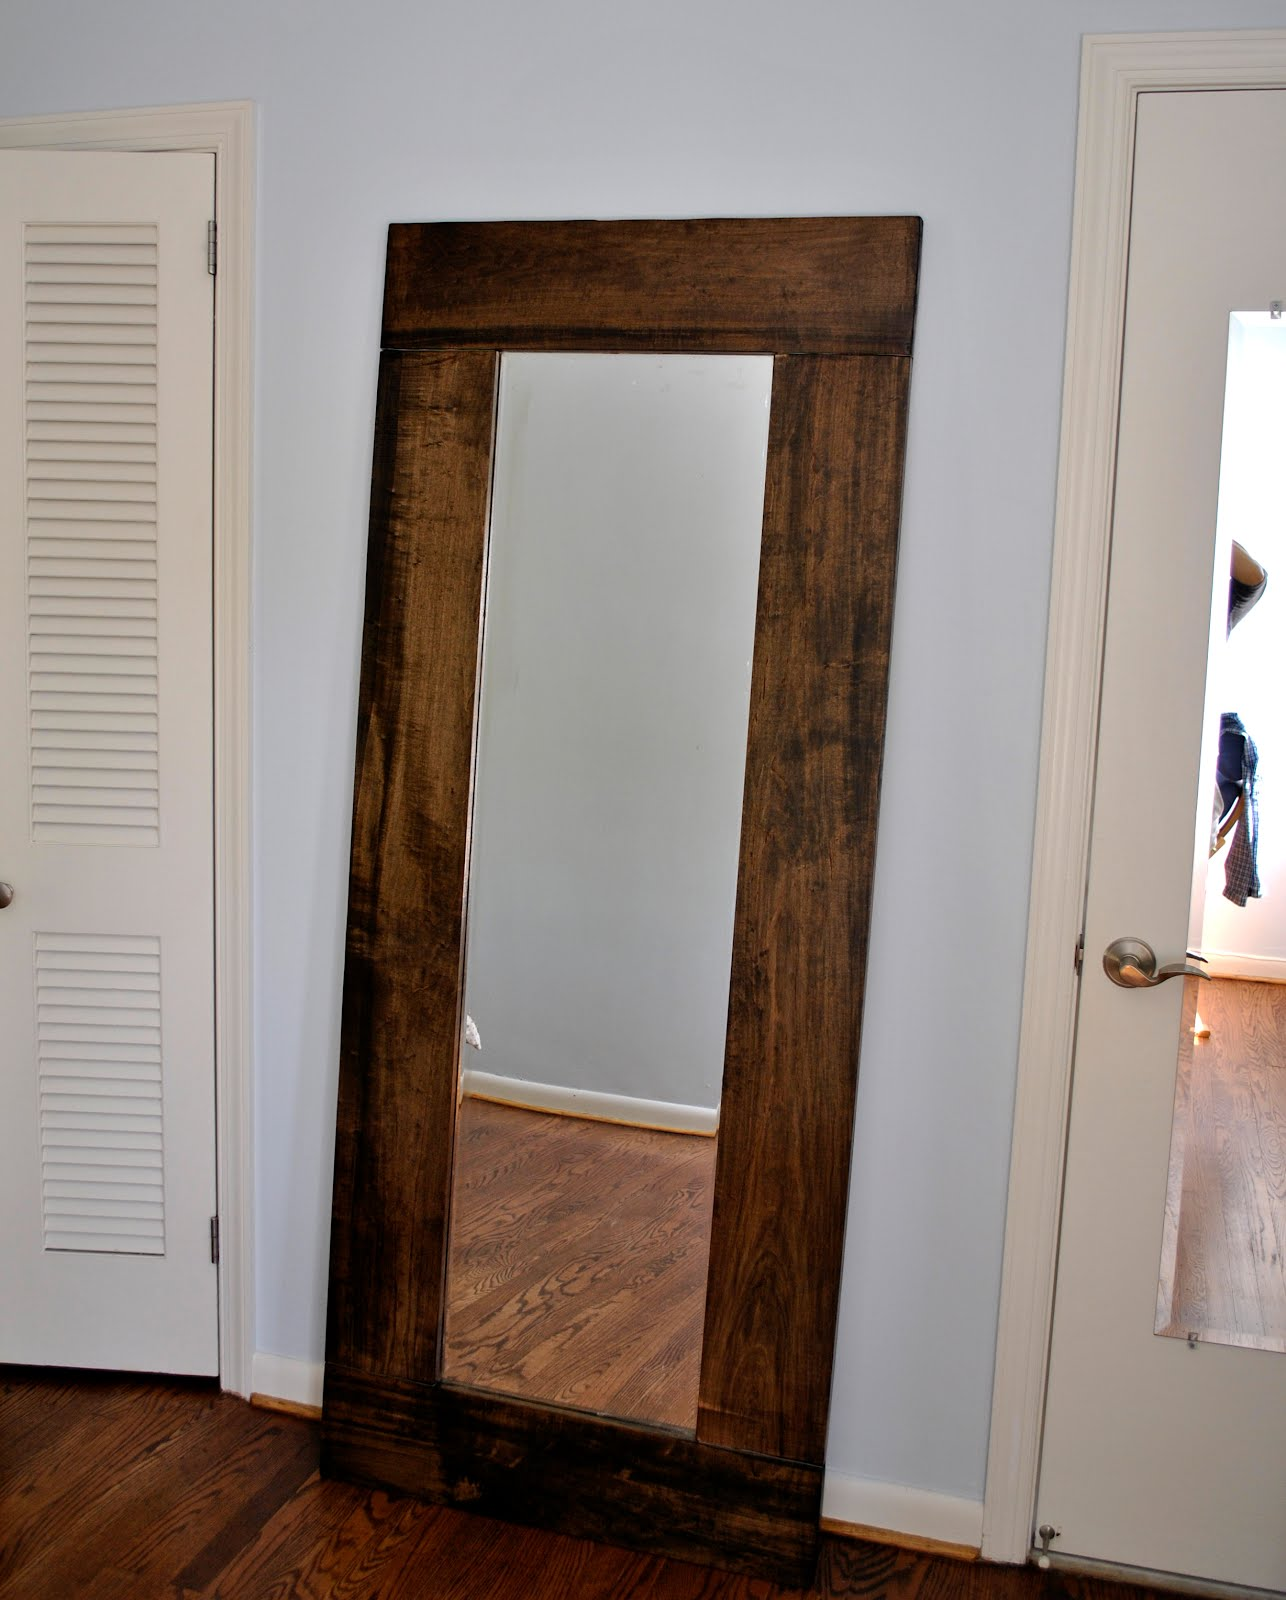 Forty two roads the mystery is revealed for Giant bedroom mirror